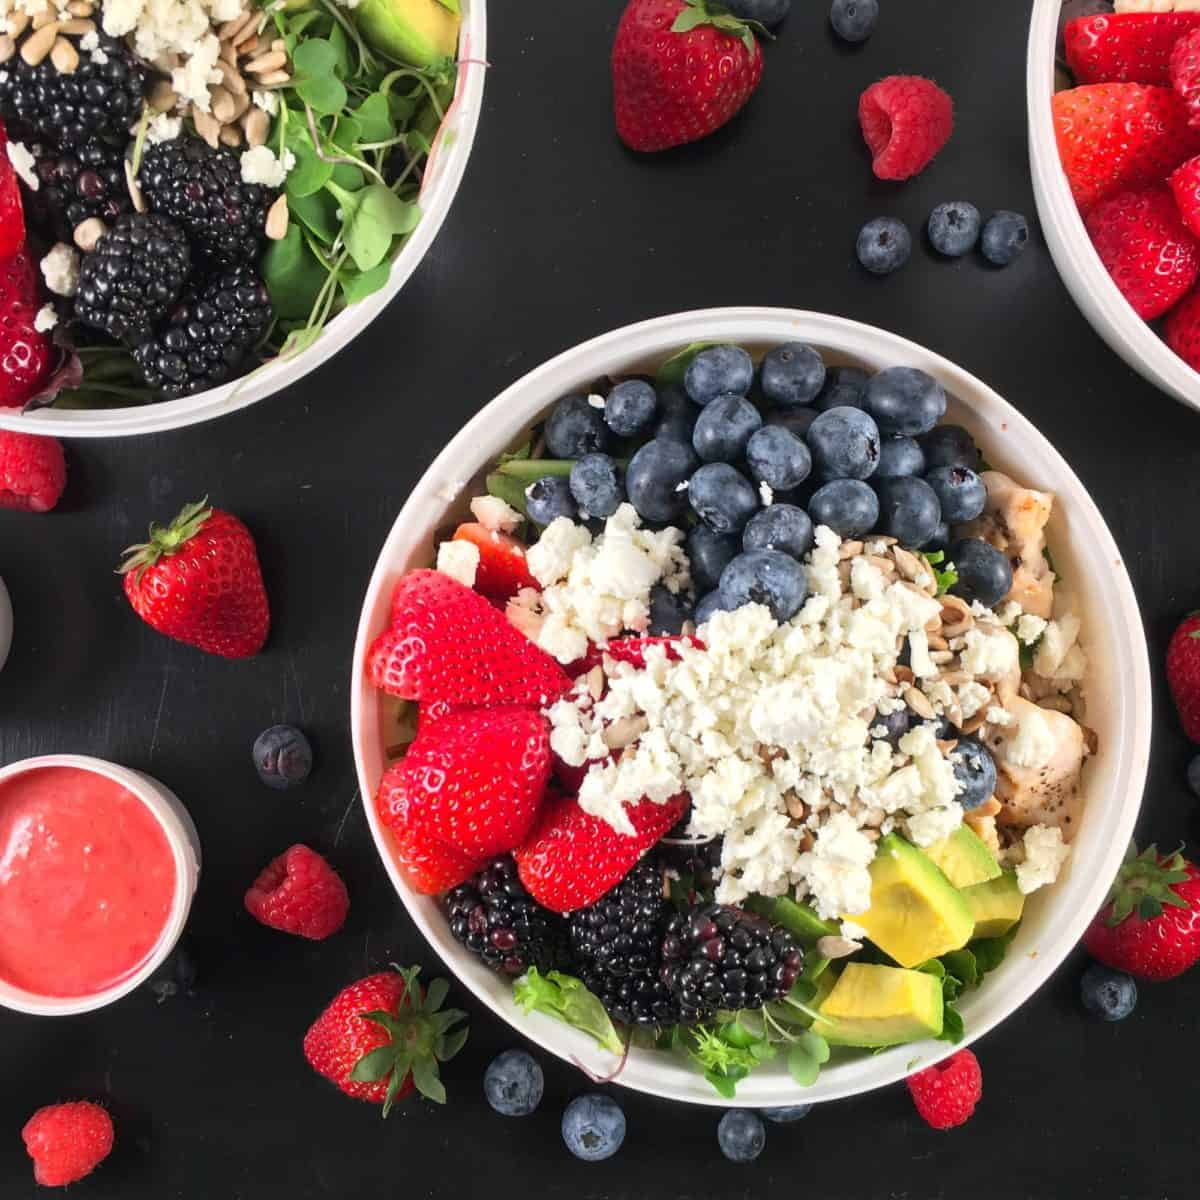 Berry salad with five types of berries